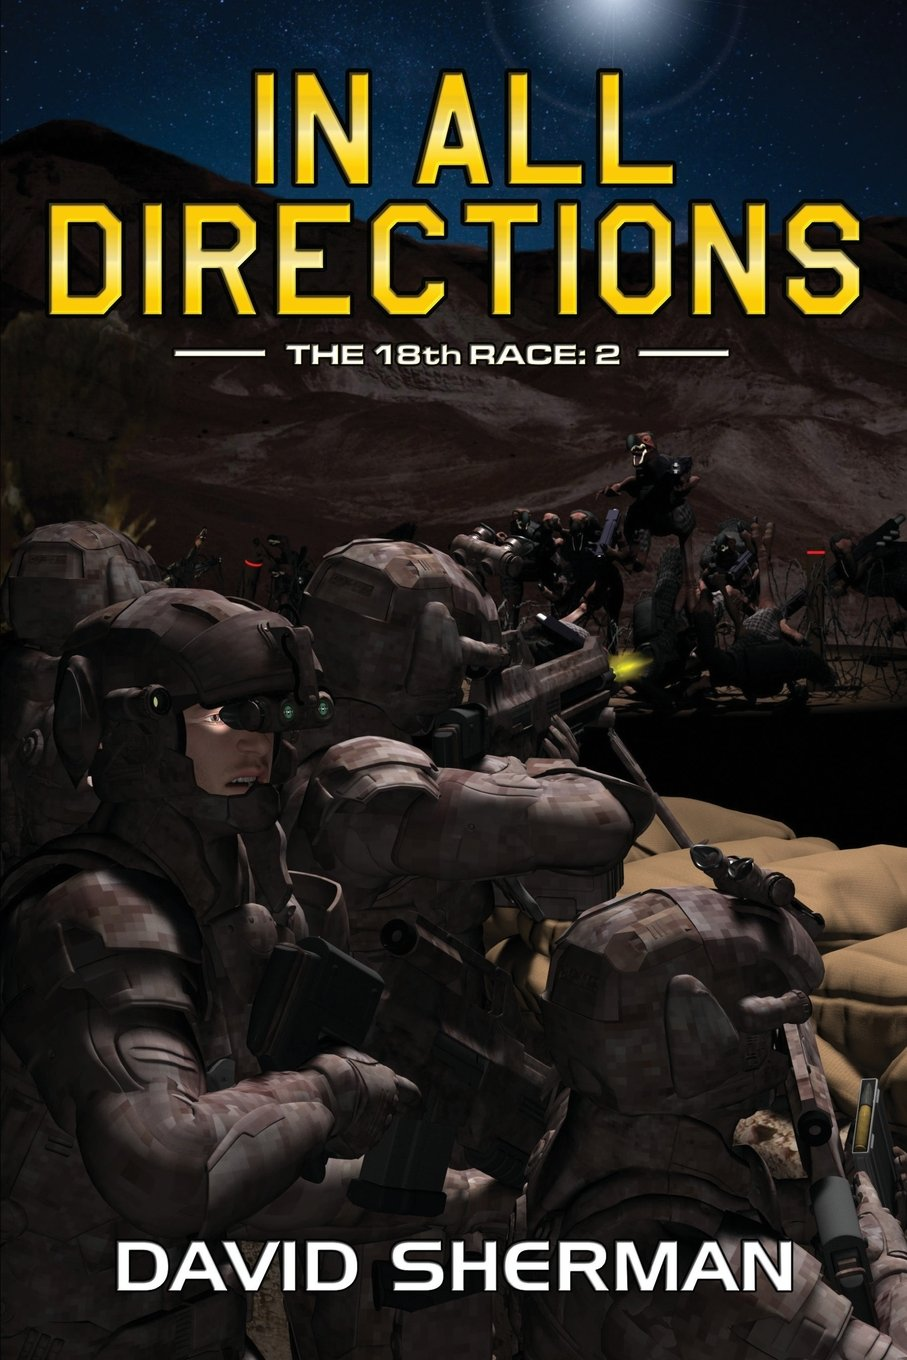 In All Directions, by David Sherman